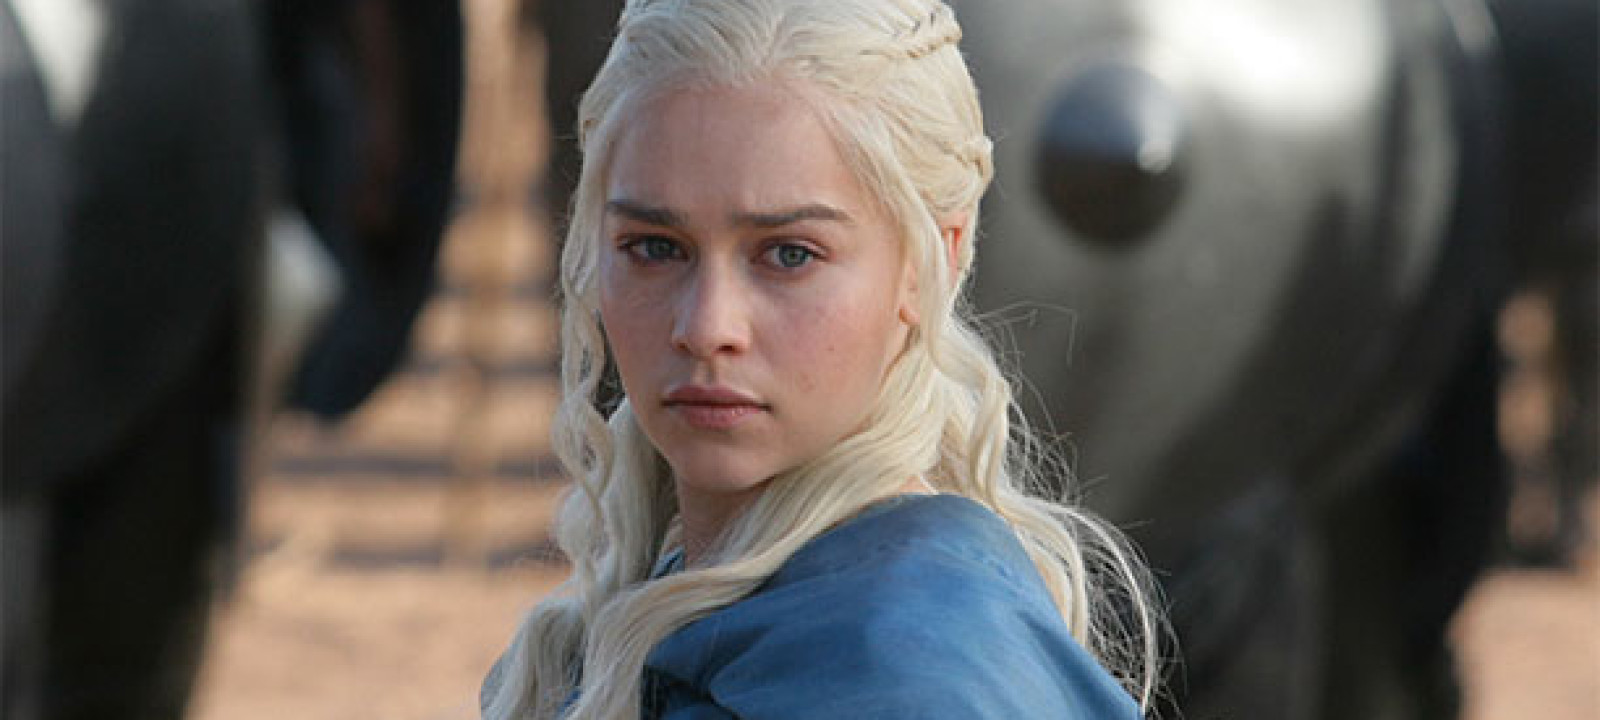 Emelia Clarke as Daenerys Targaryen in 'Game of Thrones' (Pic: HBO)